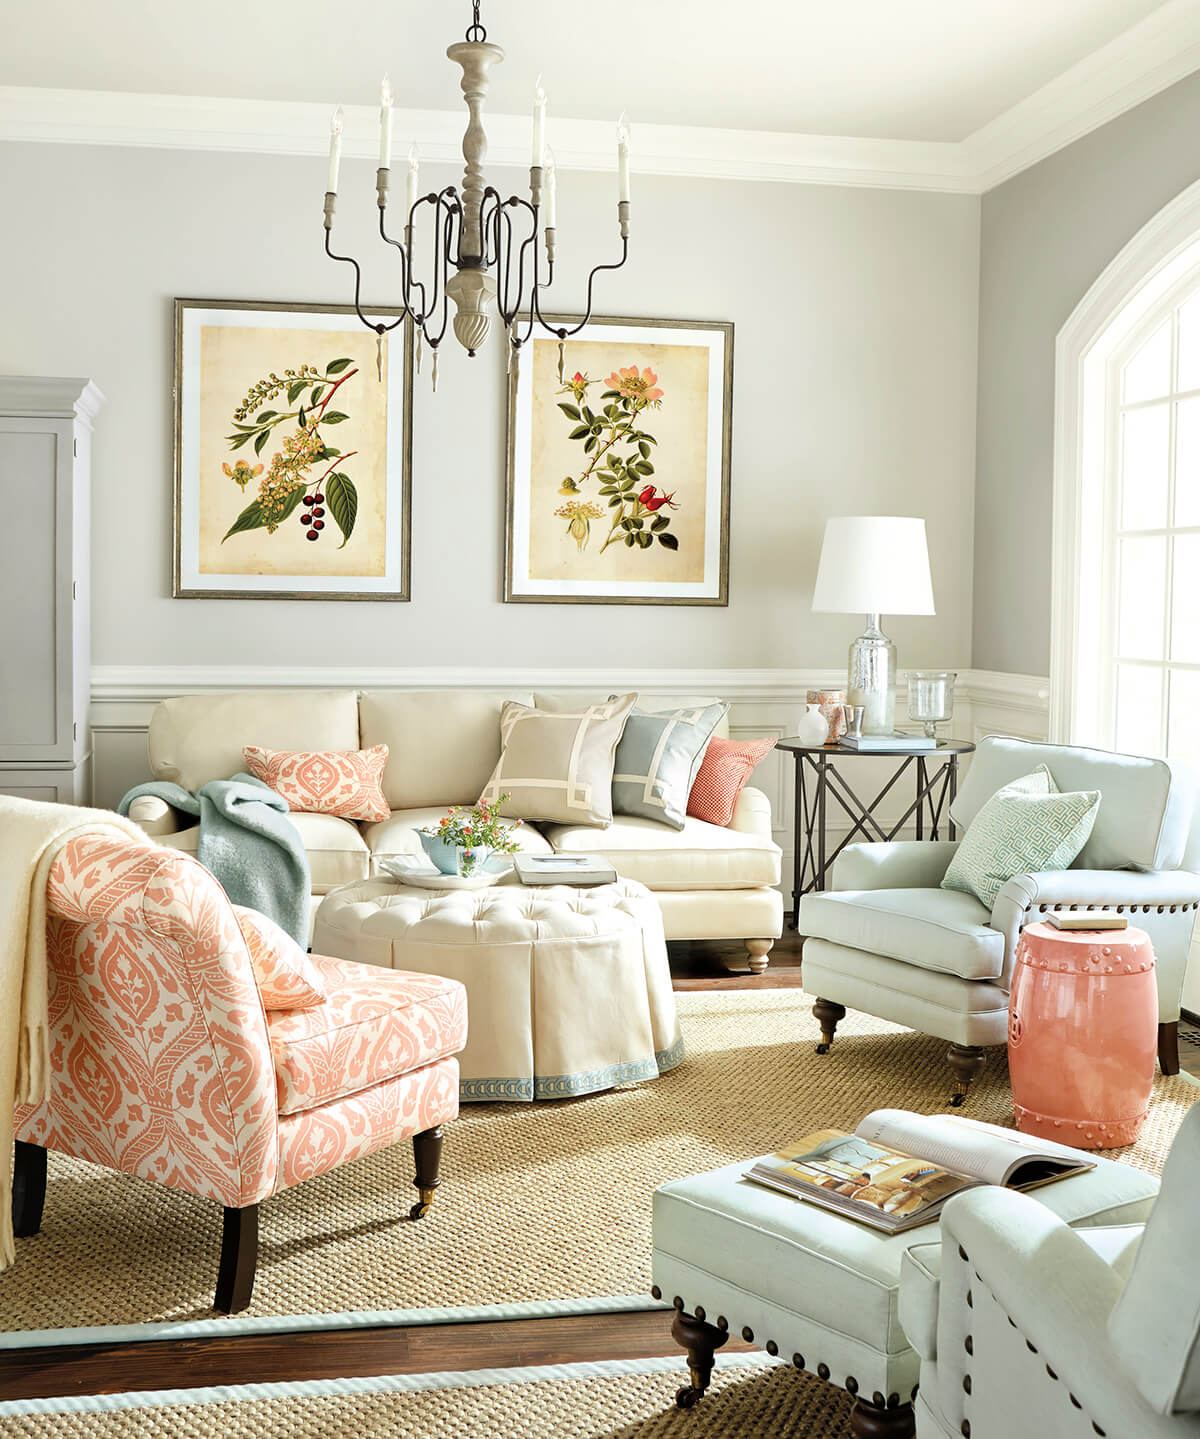 23 Best Beige Living Room Design Ideas For 2020: 30 Best Decoration Ideas Above The Sofa For 2020